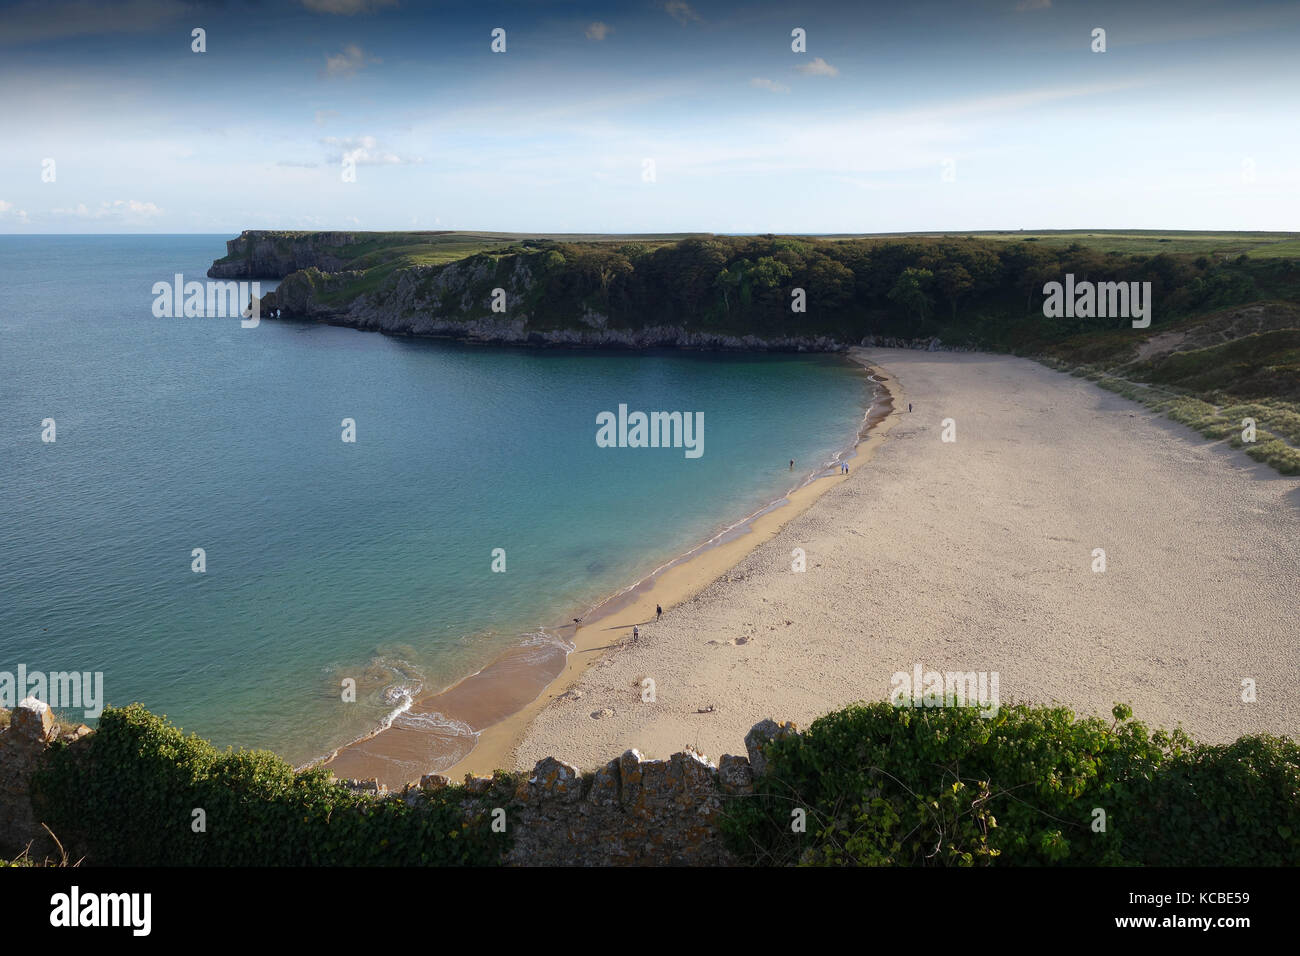 Barafundle Bay in Pembrokeshire, West Wales, Uk - Stock Image